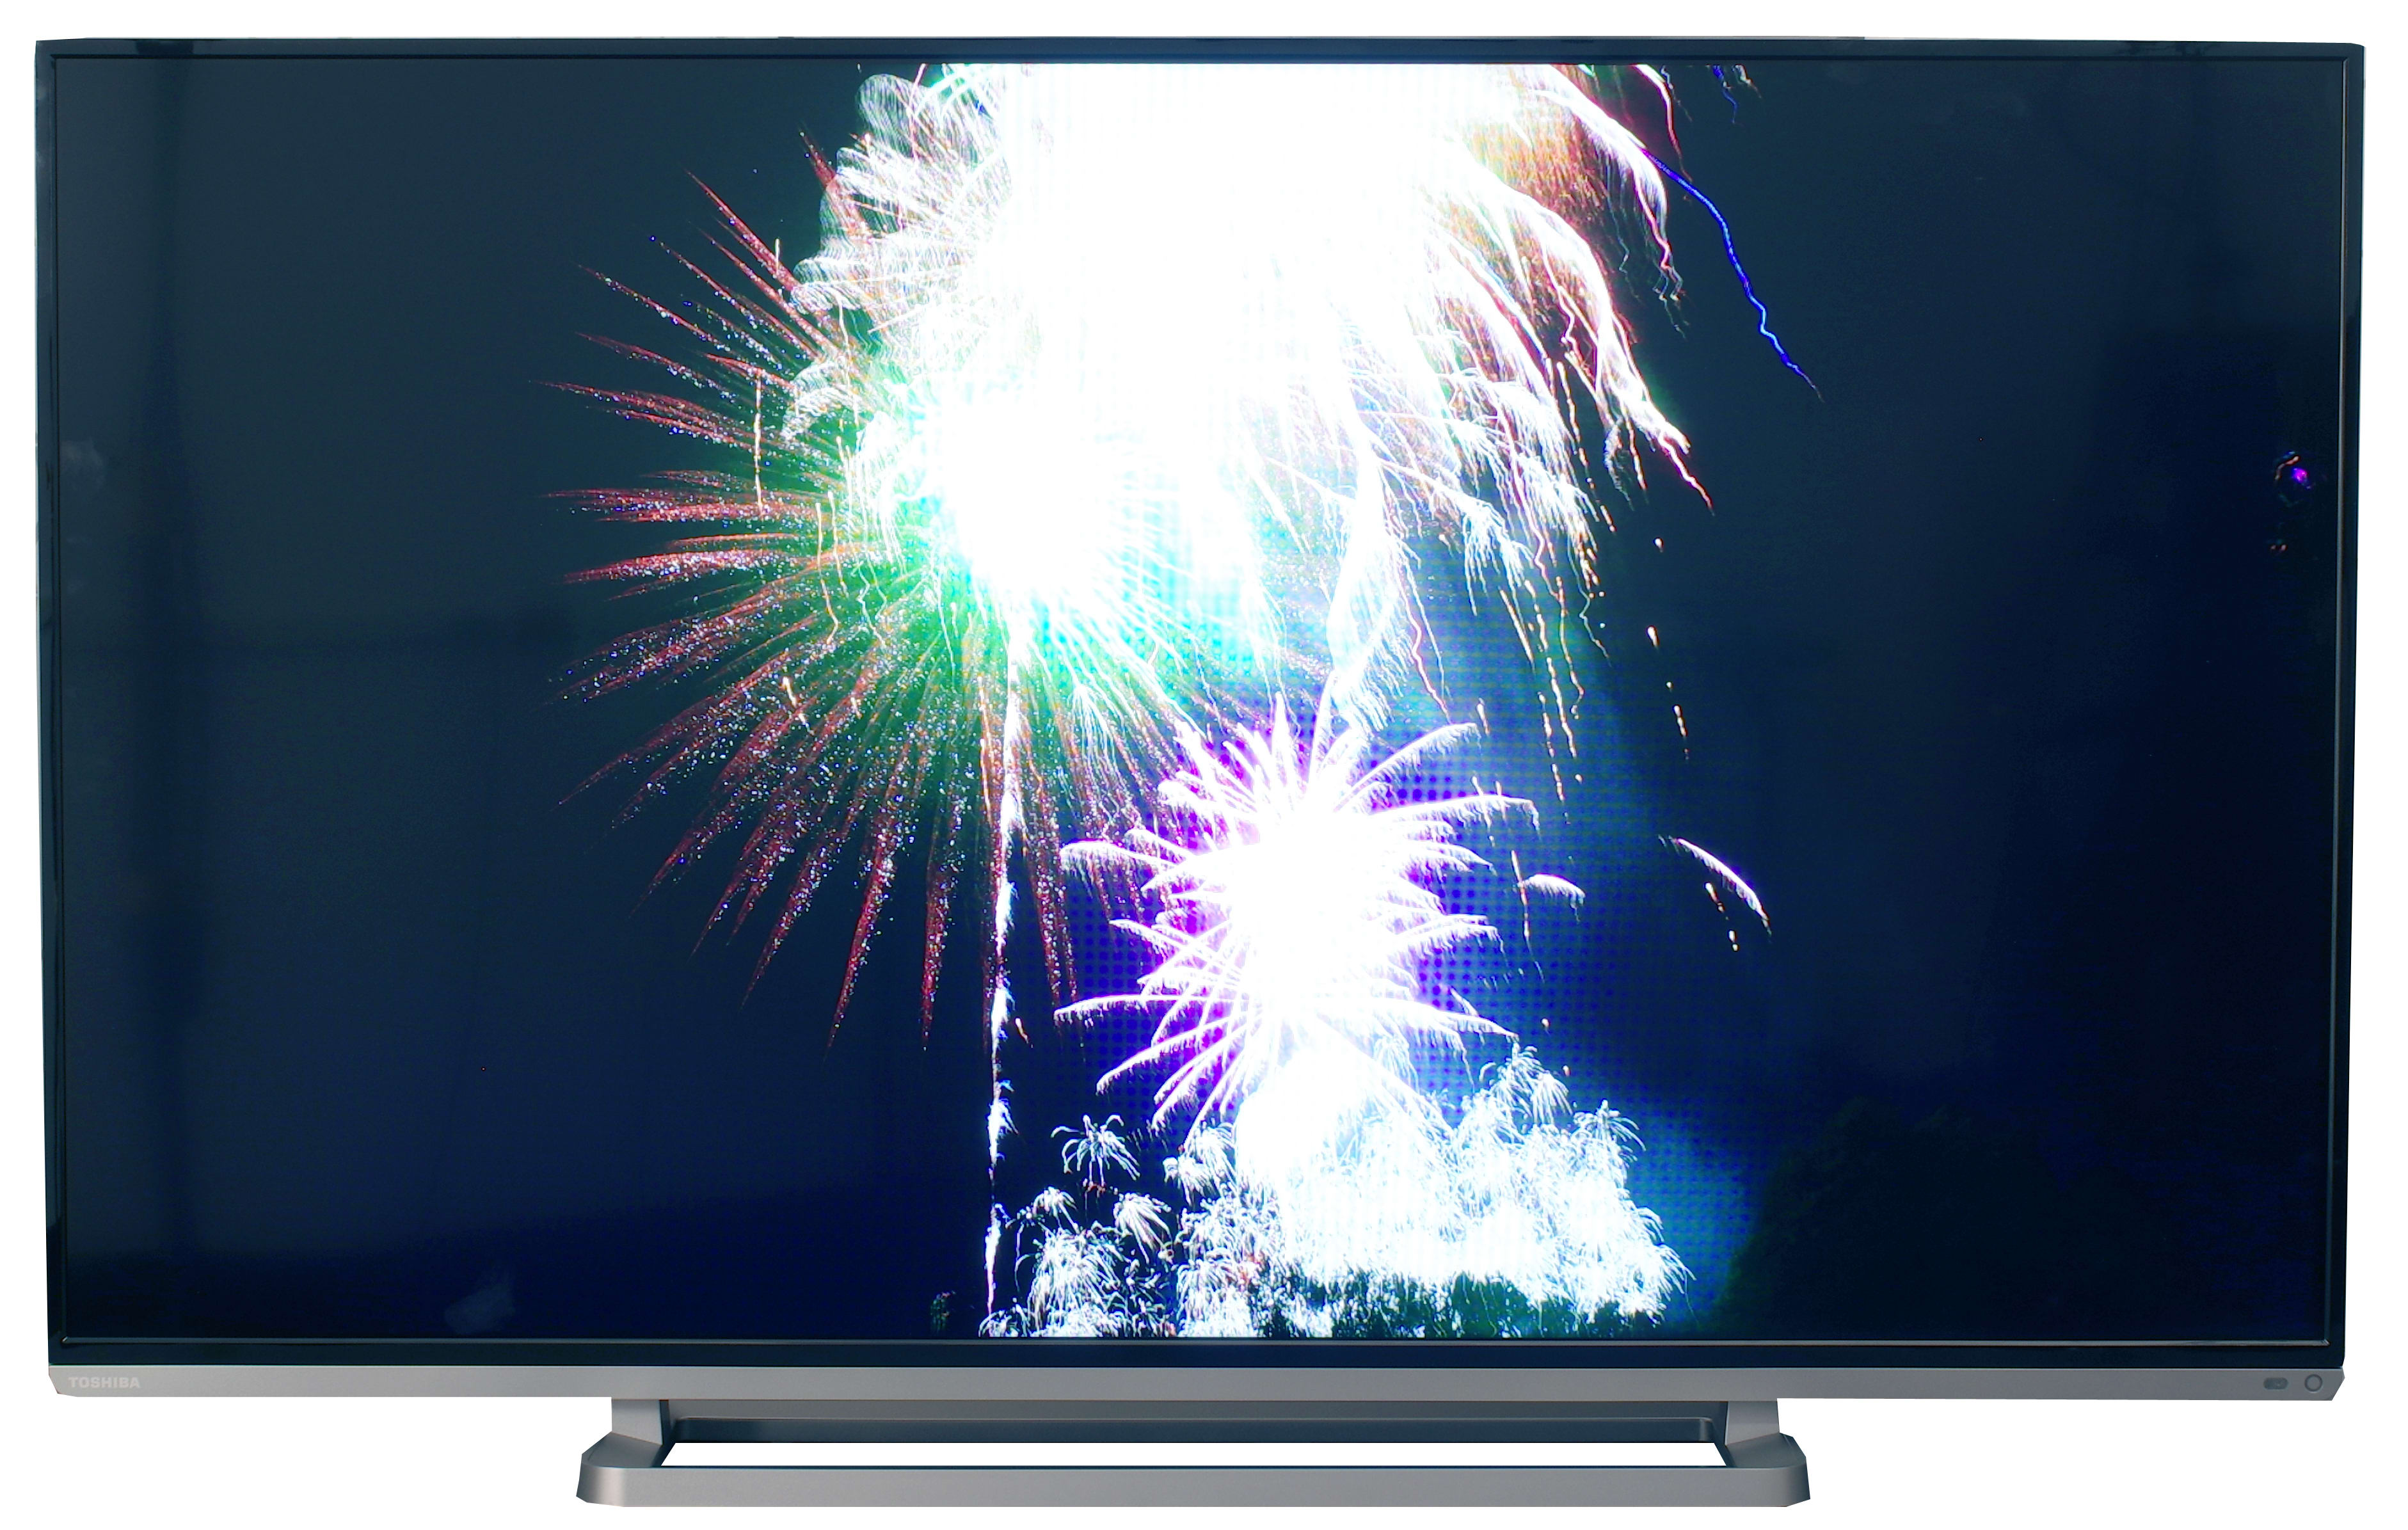 Toshiba 50L2400U LED TV Review - Reviewed Televisions